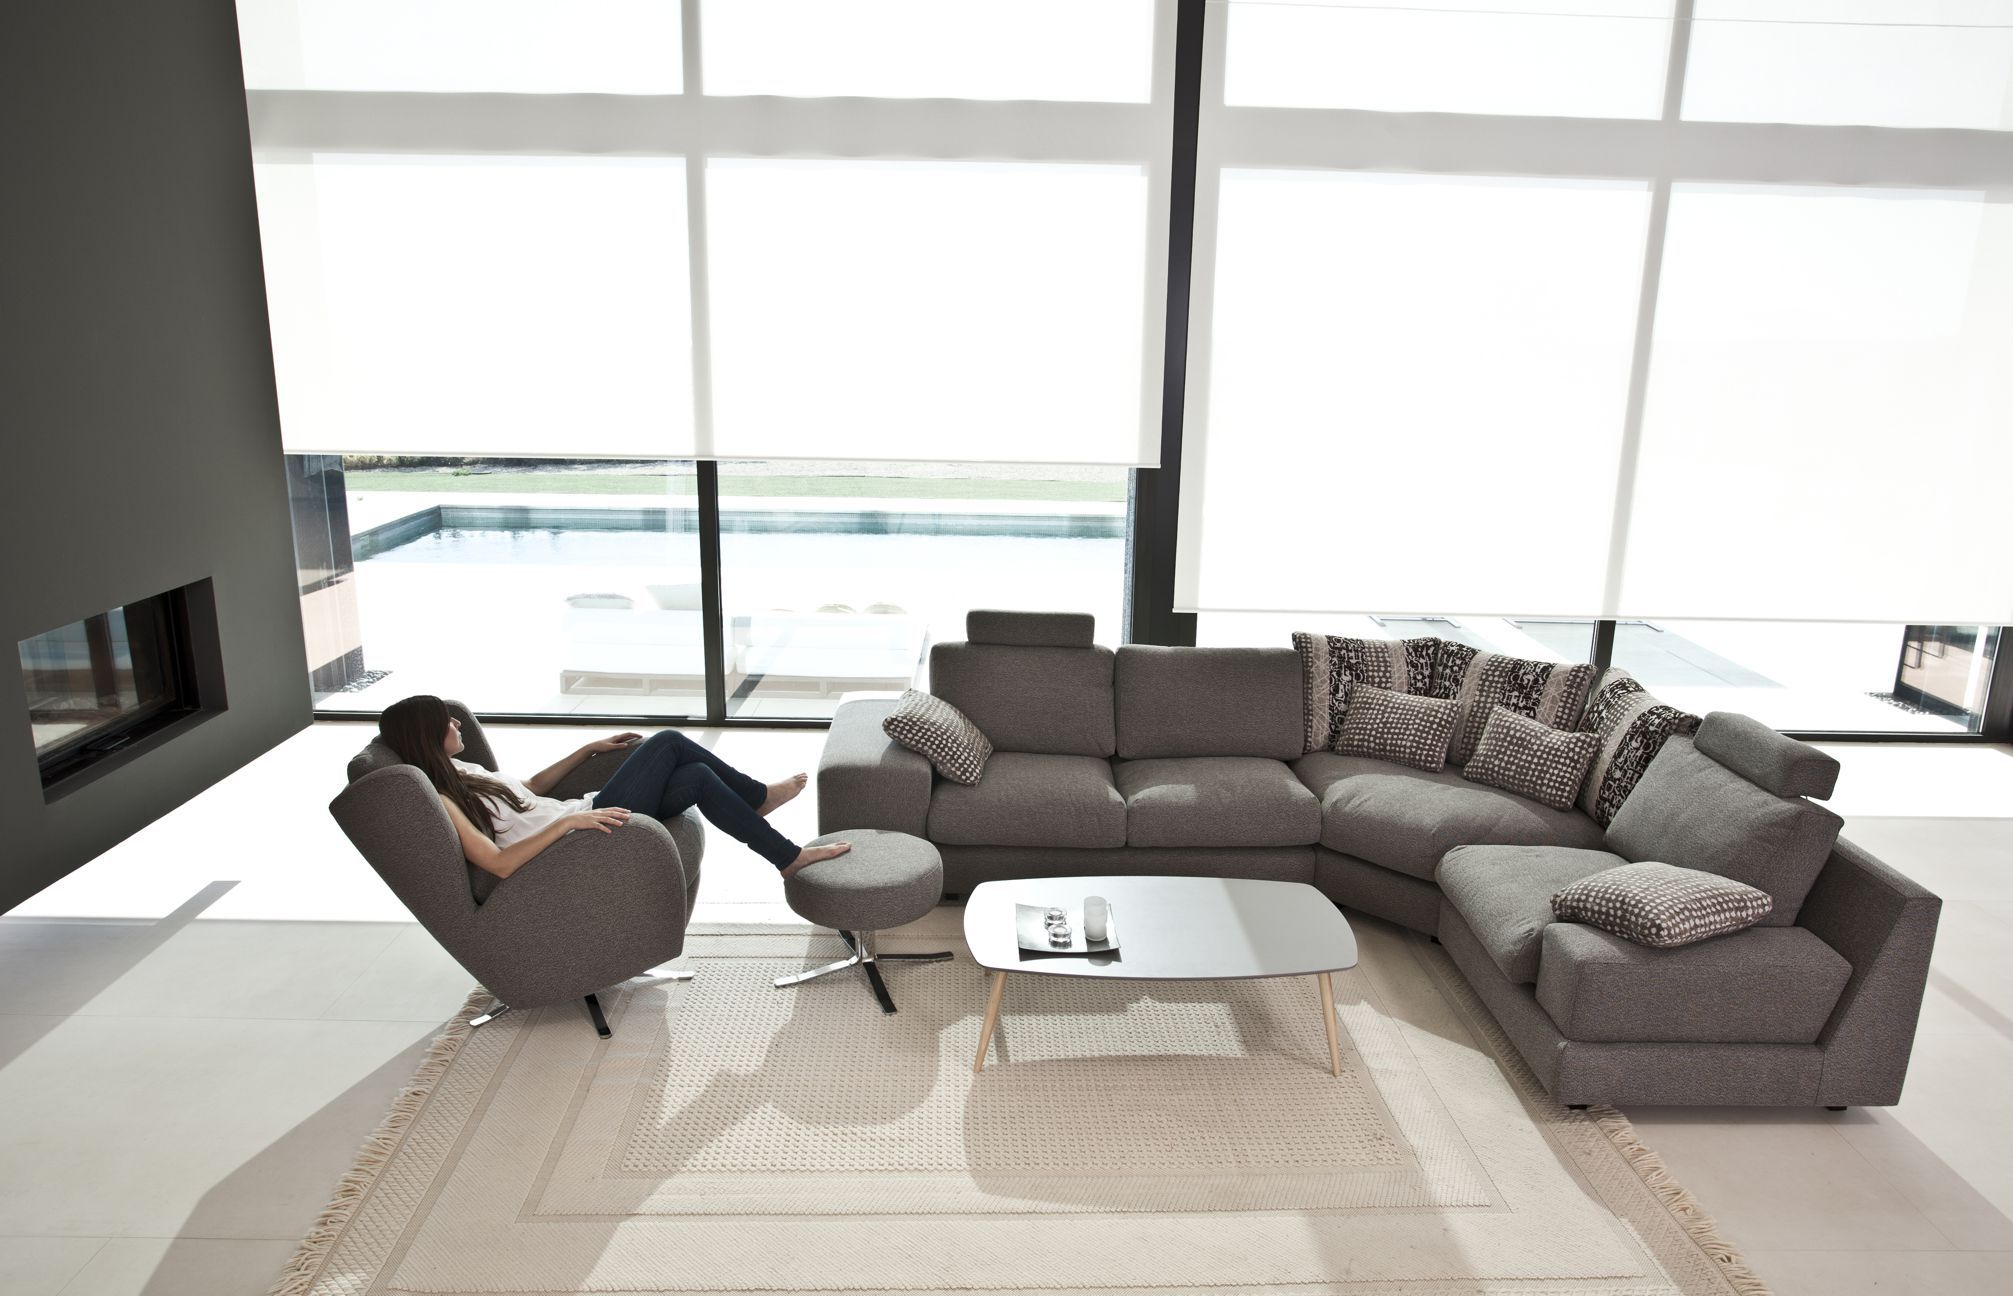 Calisto Modern Sectional Sofa By Fama Sofas Spain Modern  # Muebles Yecla Eva